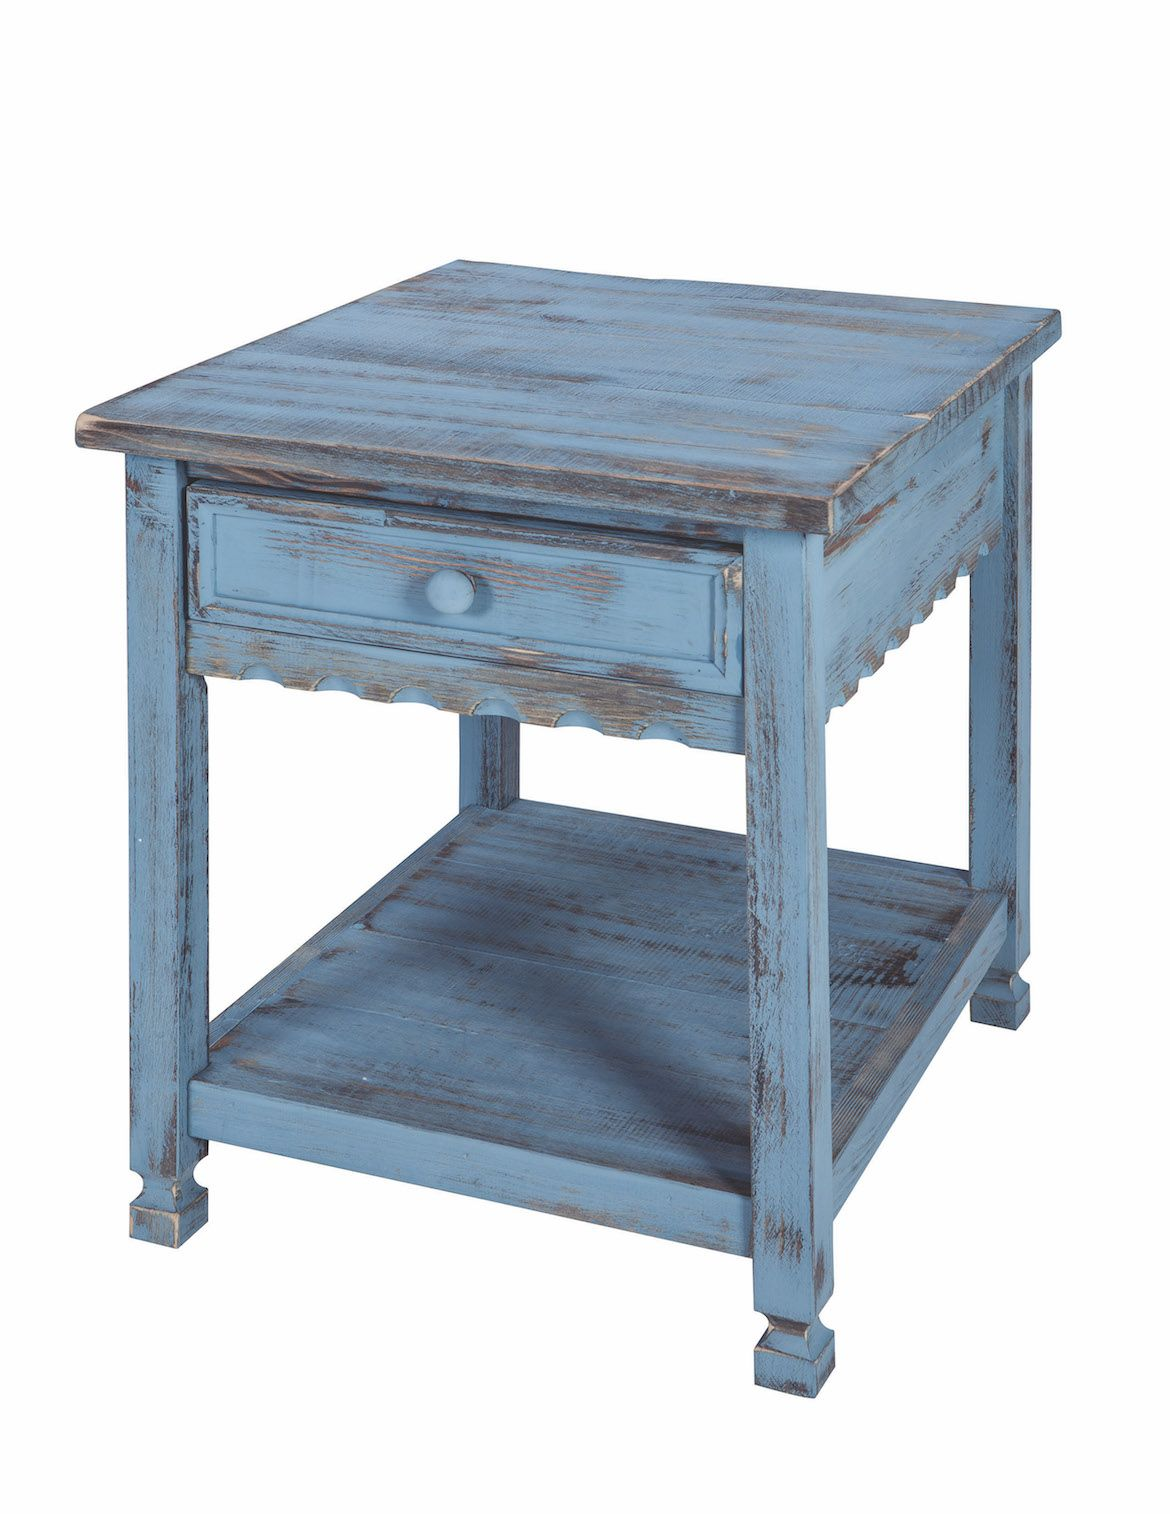 the country cottage style end table functional and stylish one tables drawer single shelf keep your room neat organized distressed finish gives north shore small modern glass